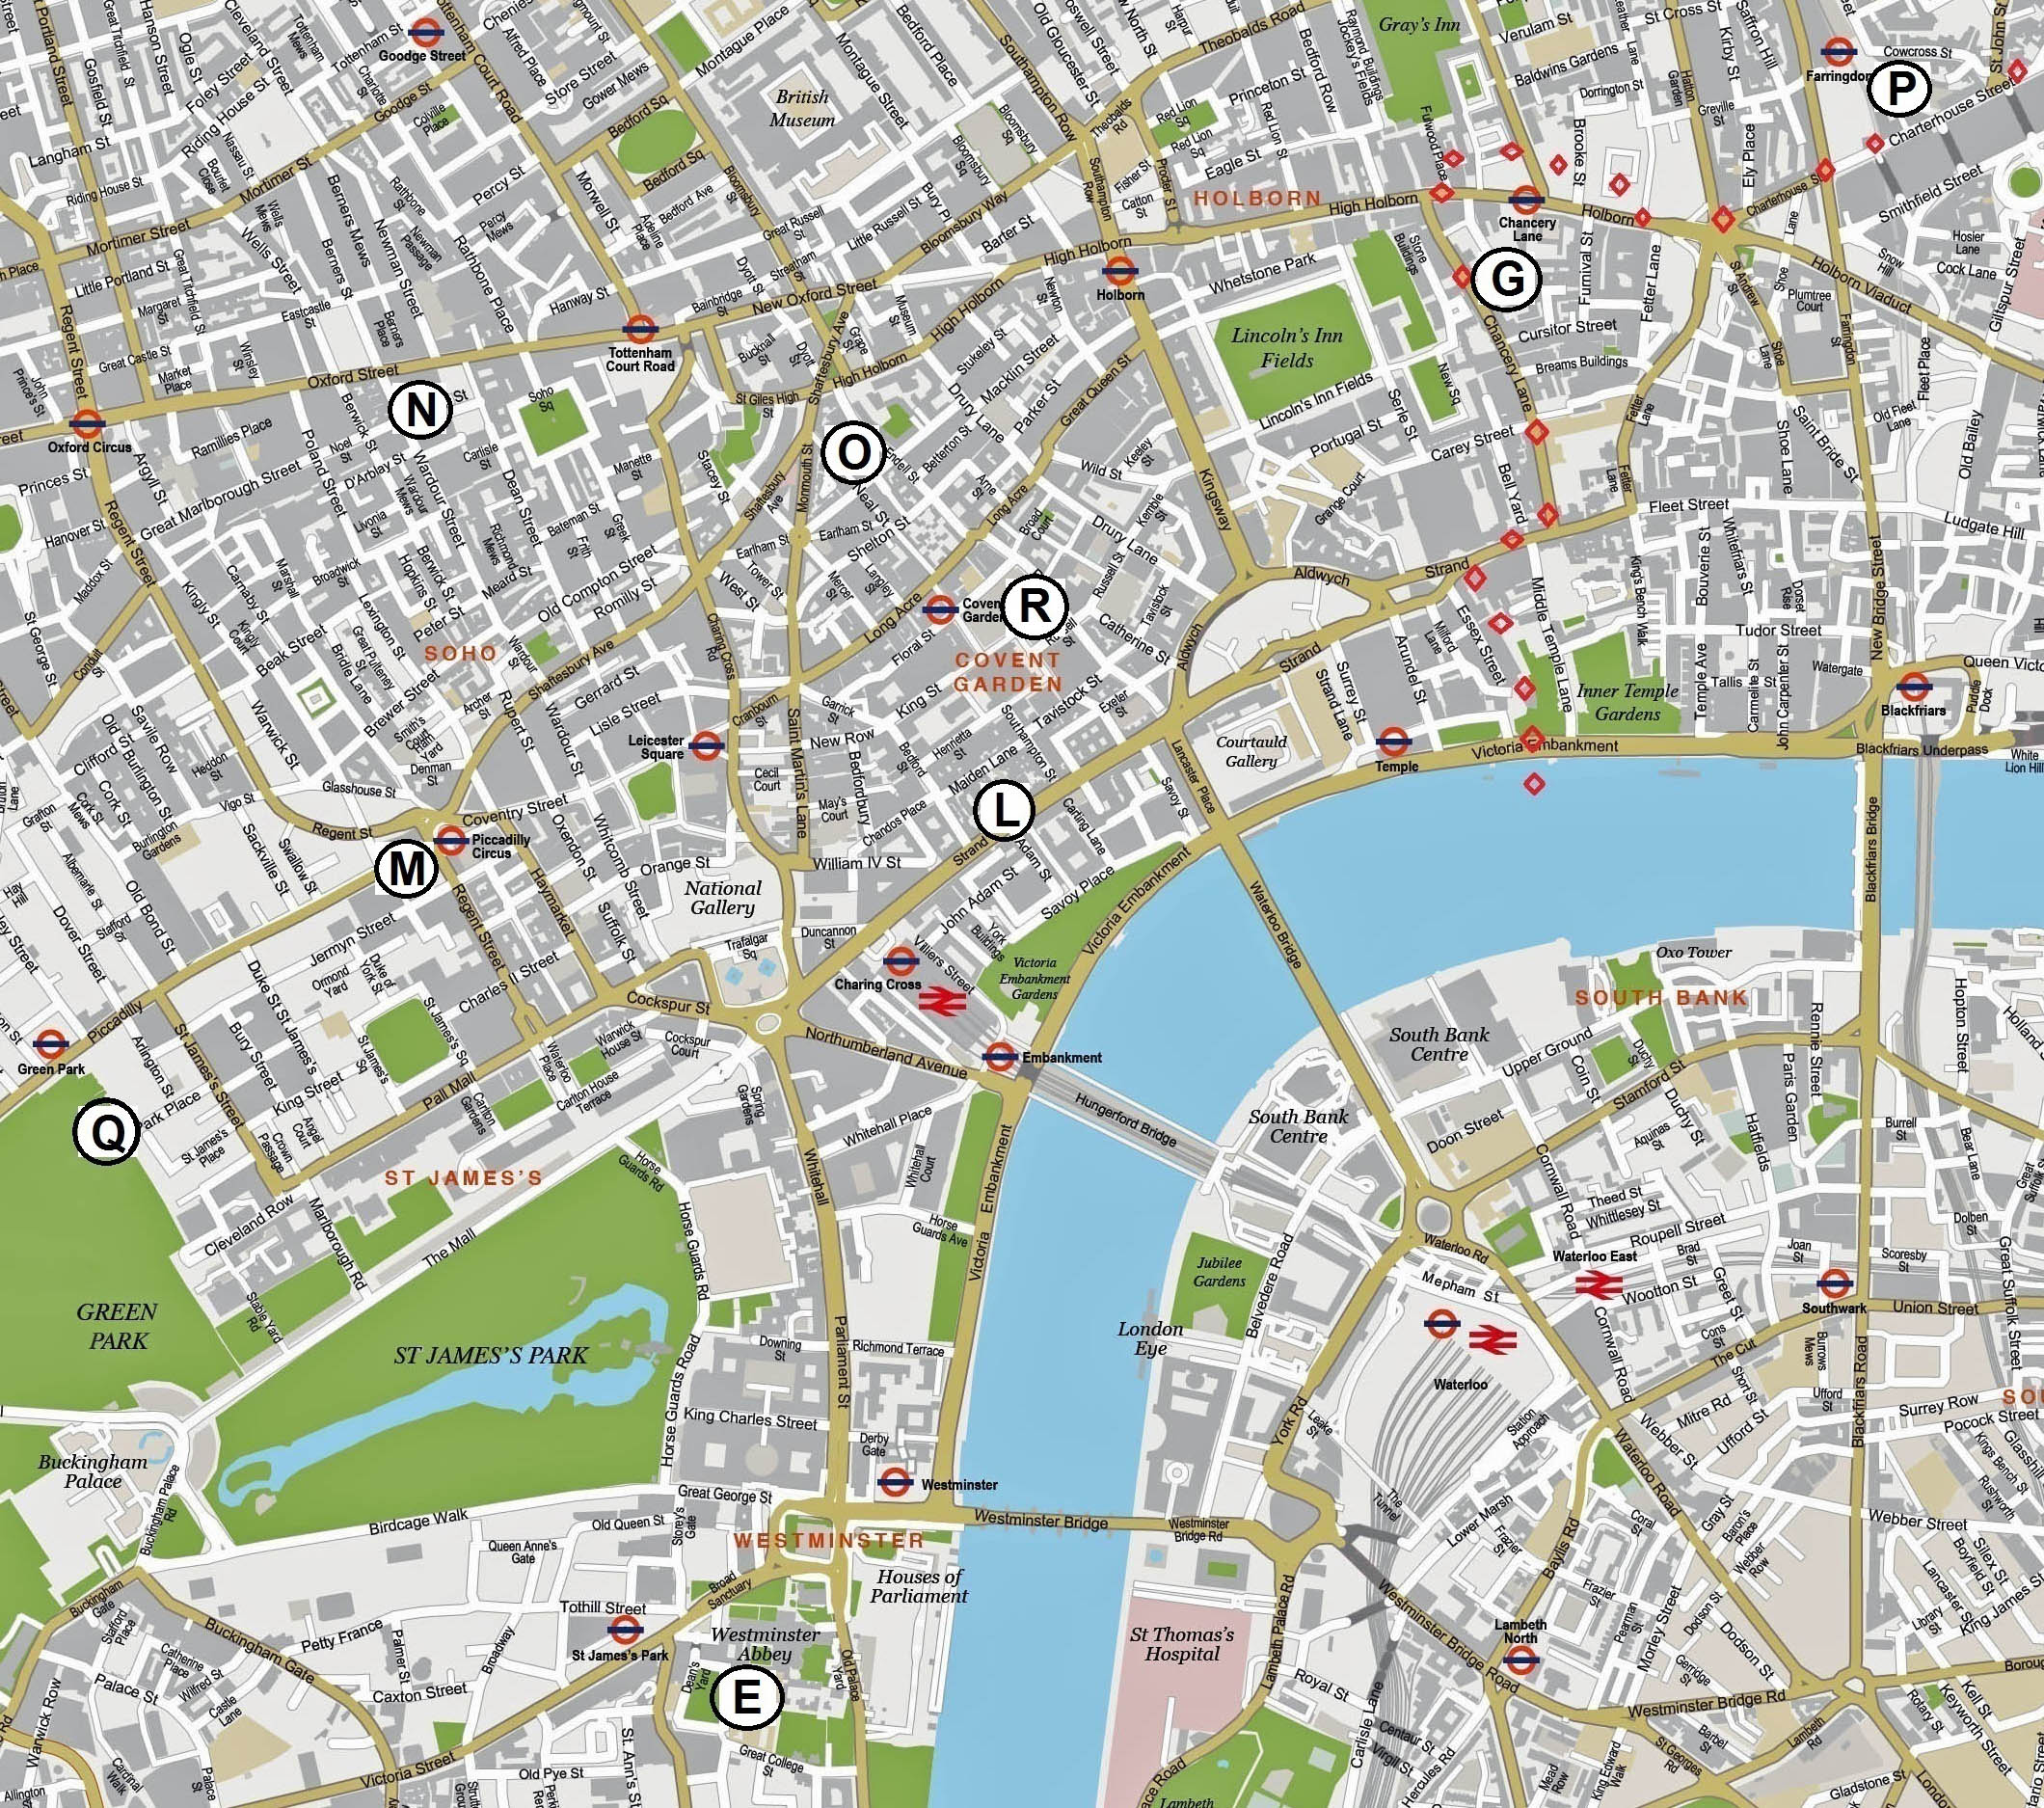 zzxc3central-london-detailed-2a-copy-west-1